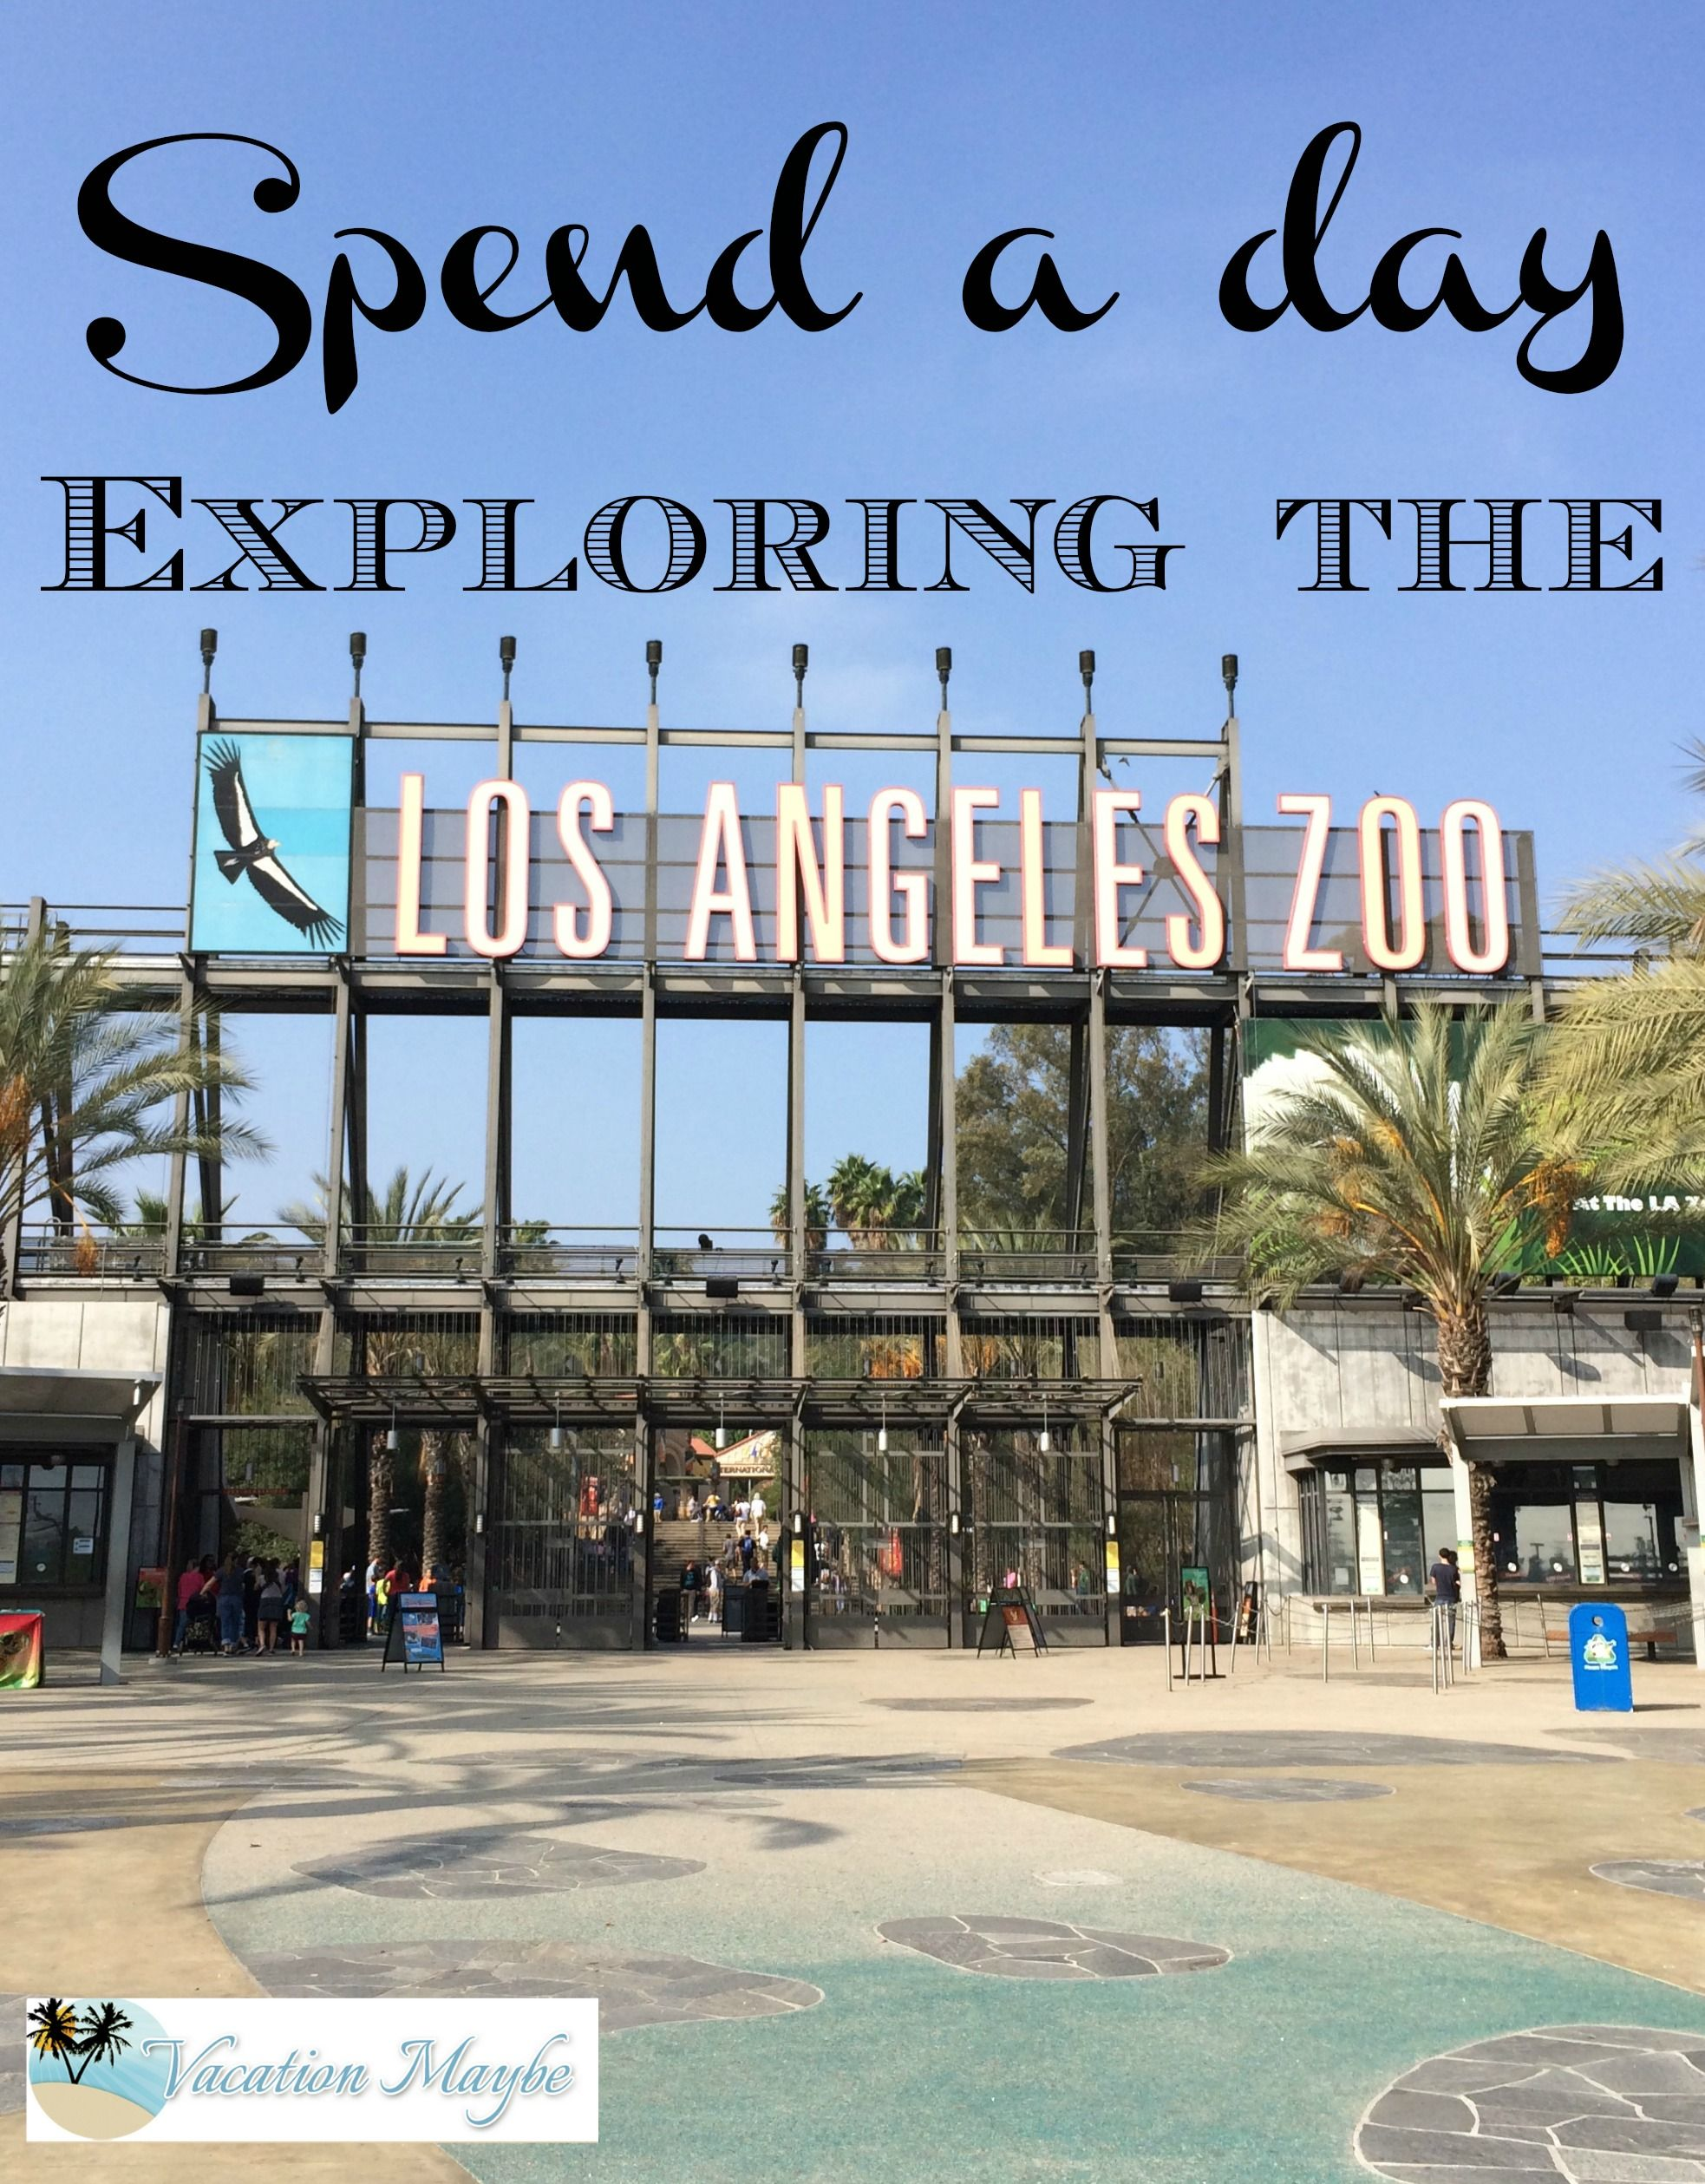 Los Angeles Zoo Los Angeles Zoo California Travel Connecticut Travel